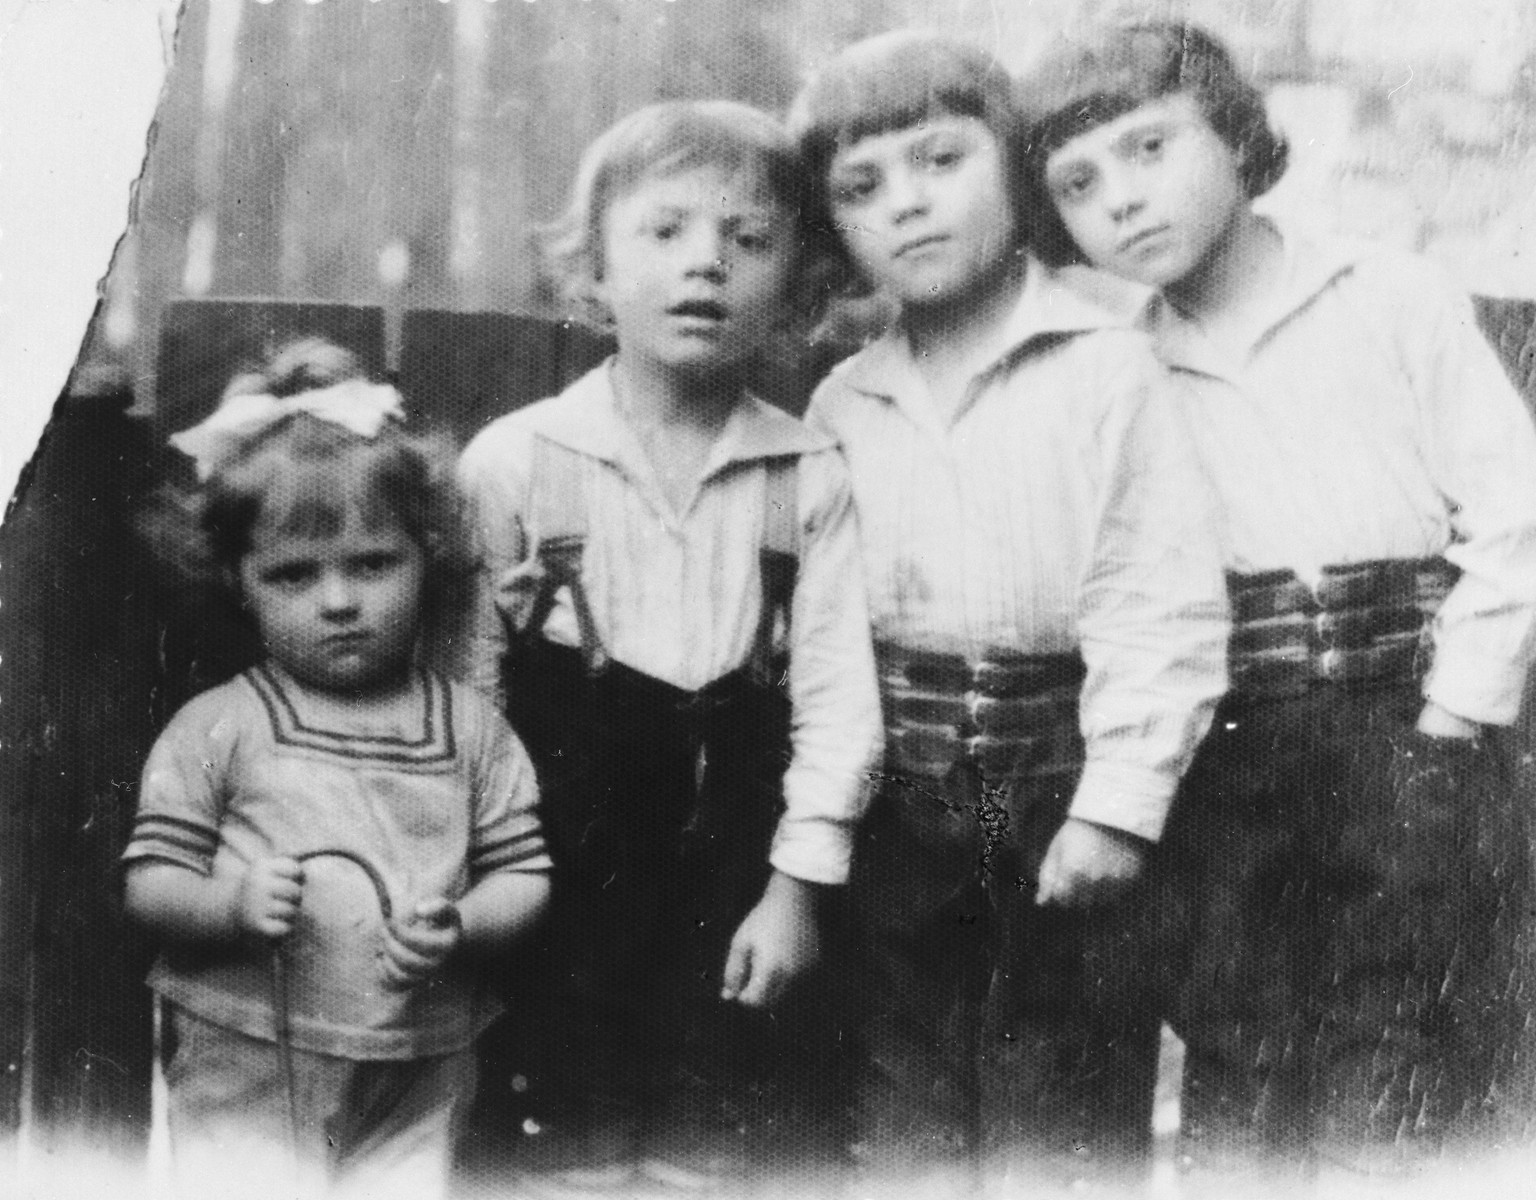 Portrait of four of the Kleinhandler children in Chmielnik, Poland.  Pictured from left to right are: Bluma, Moshe, Leibisz and Avram Kleinhandler.